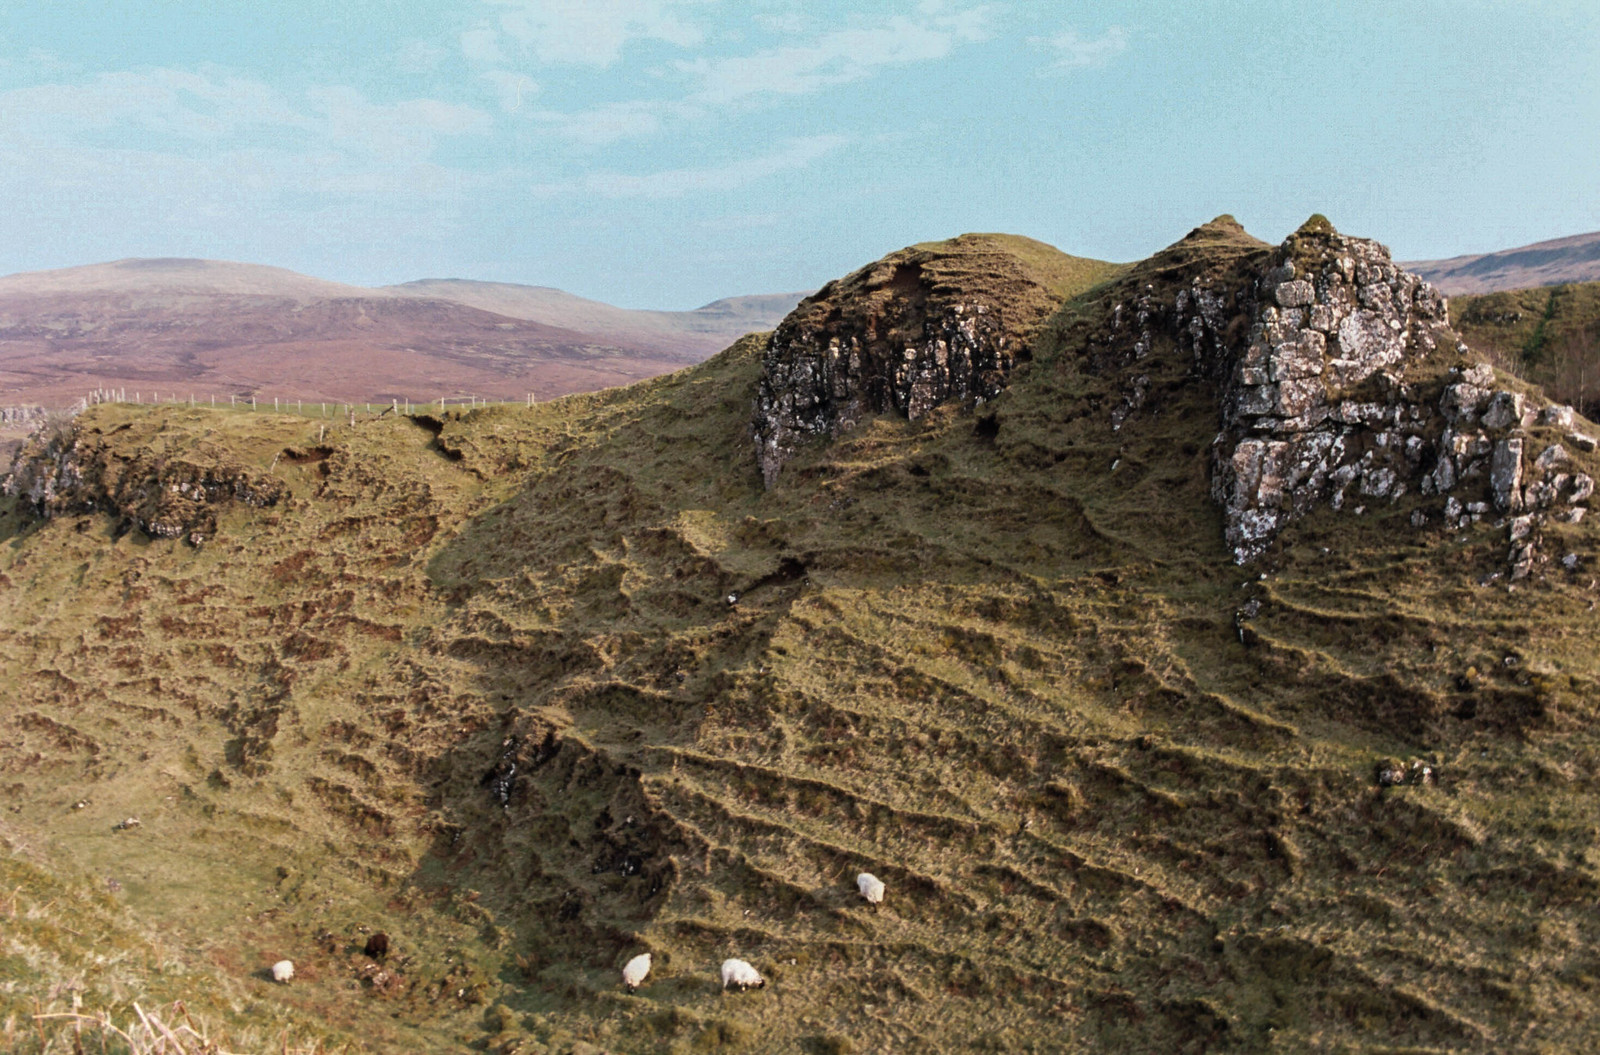 Sheep at the Fairy Glen (Isle of Skye) taken on 35mm Kodak Etkar film.